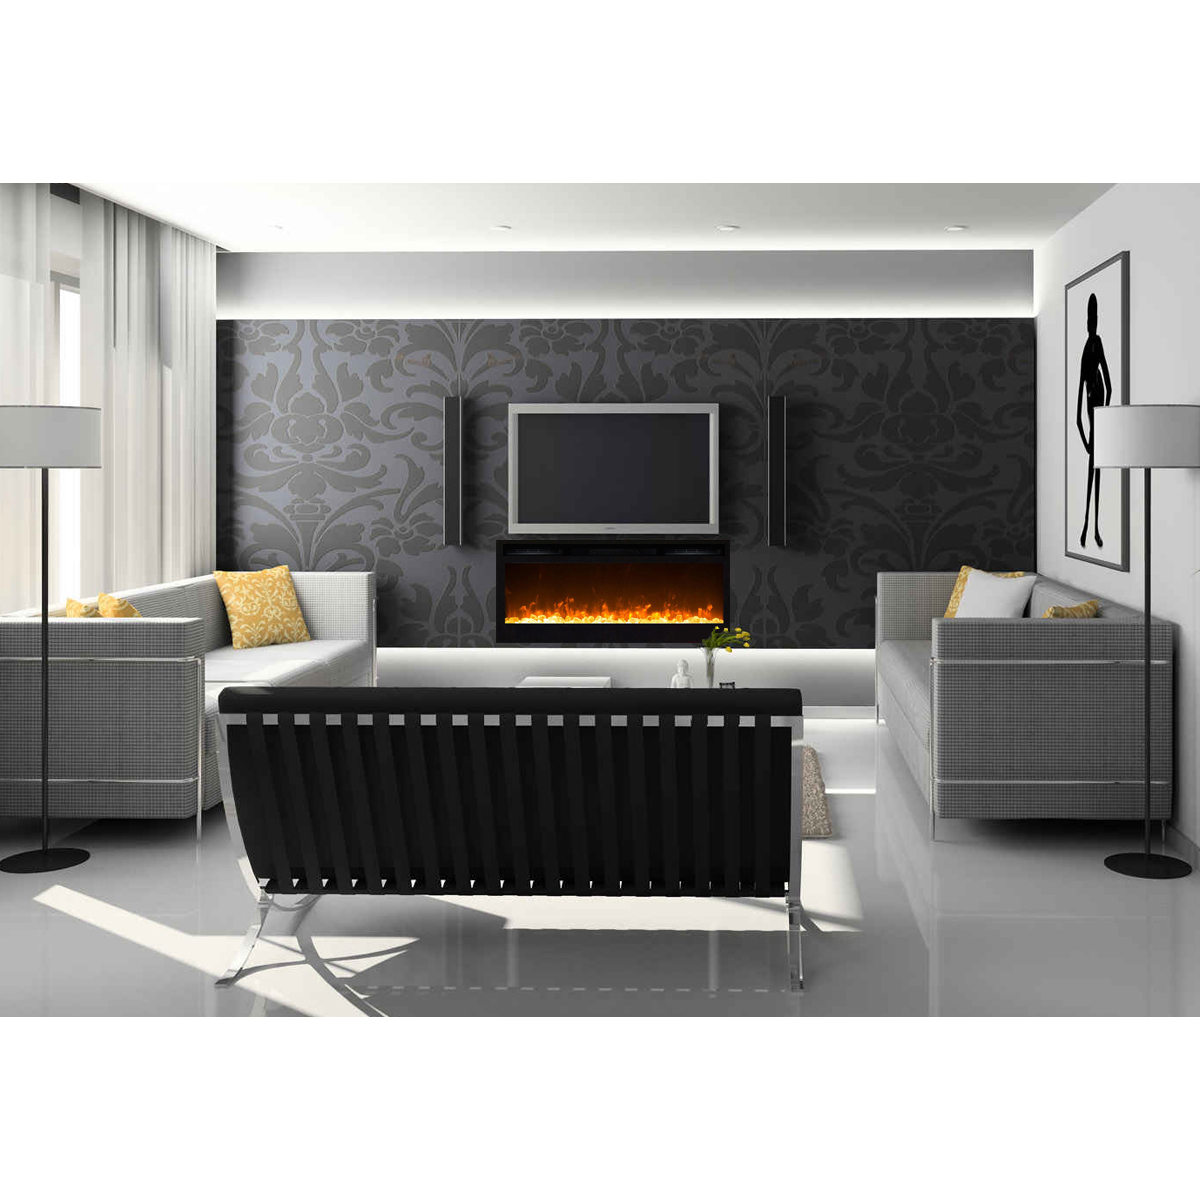 decor black and wall using small design for in leather lighting rugs ideas with sofa decoration decorating simple also above furniture recessed tv fireplace floor